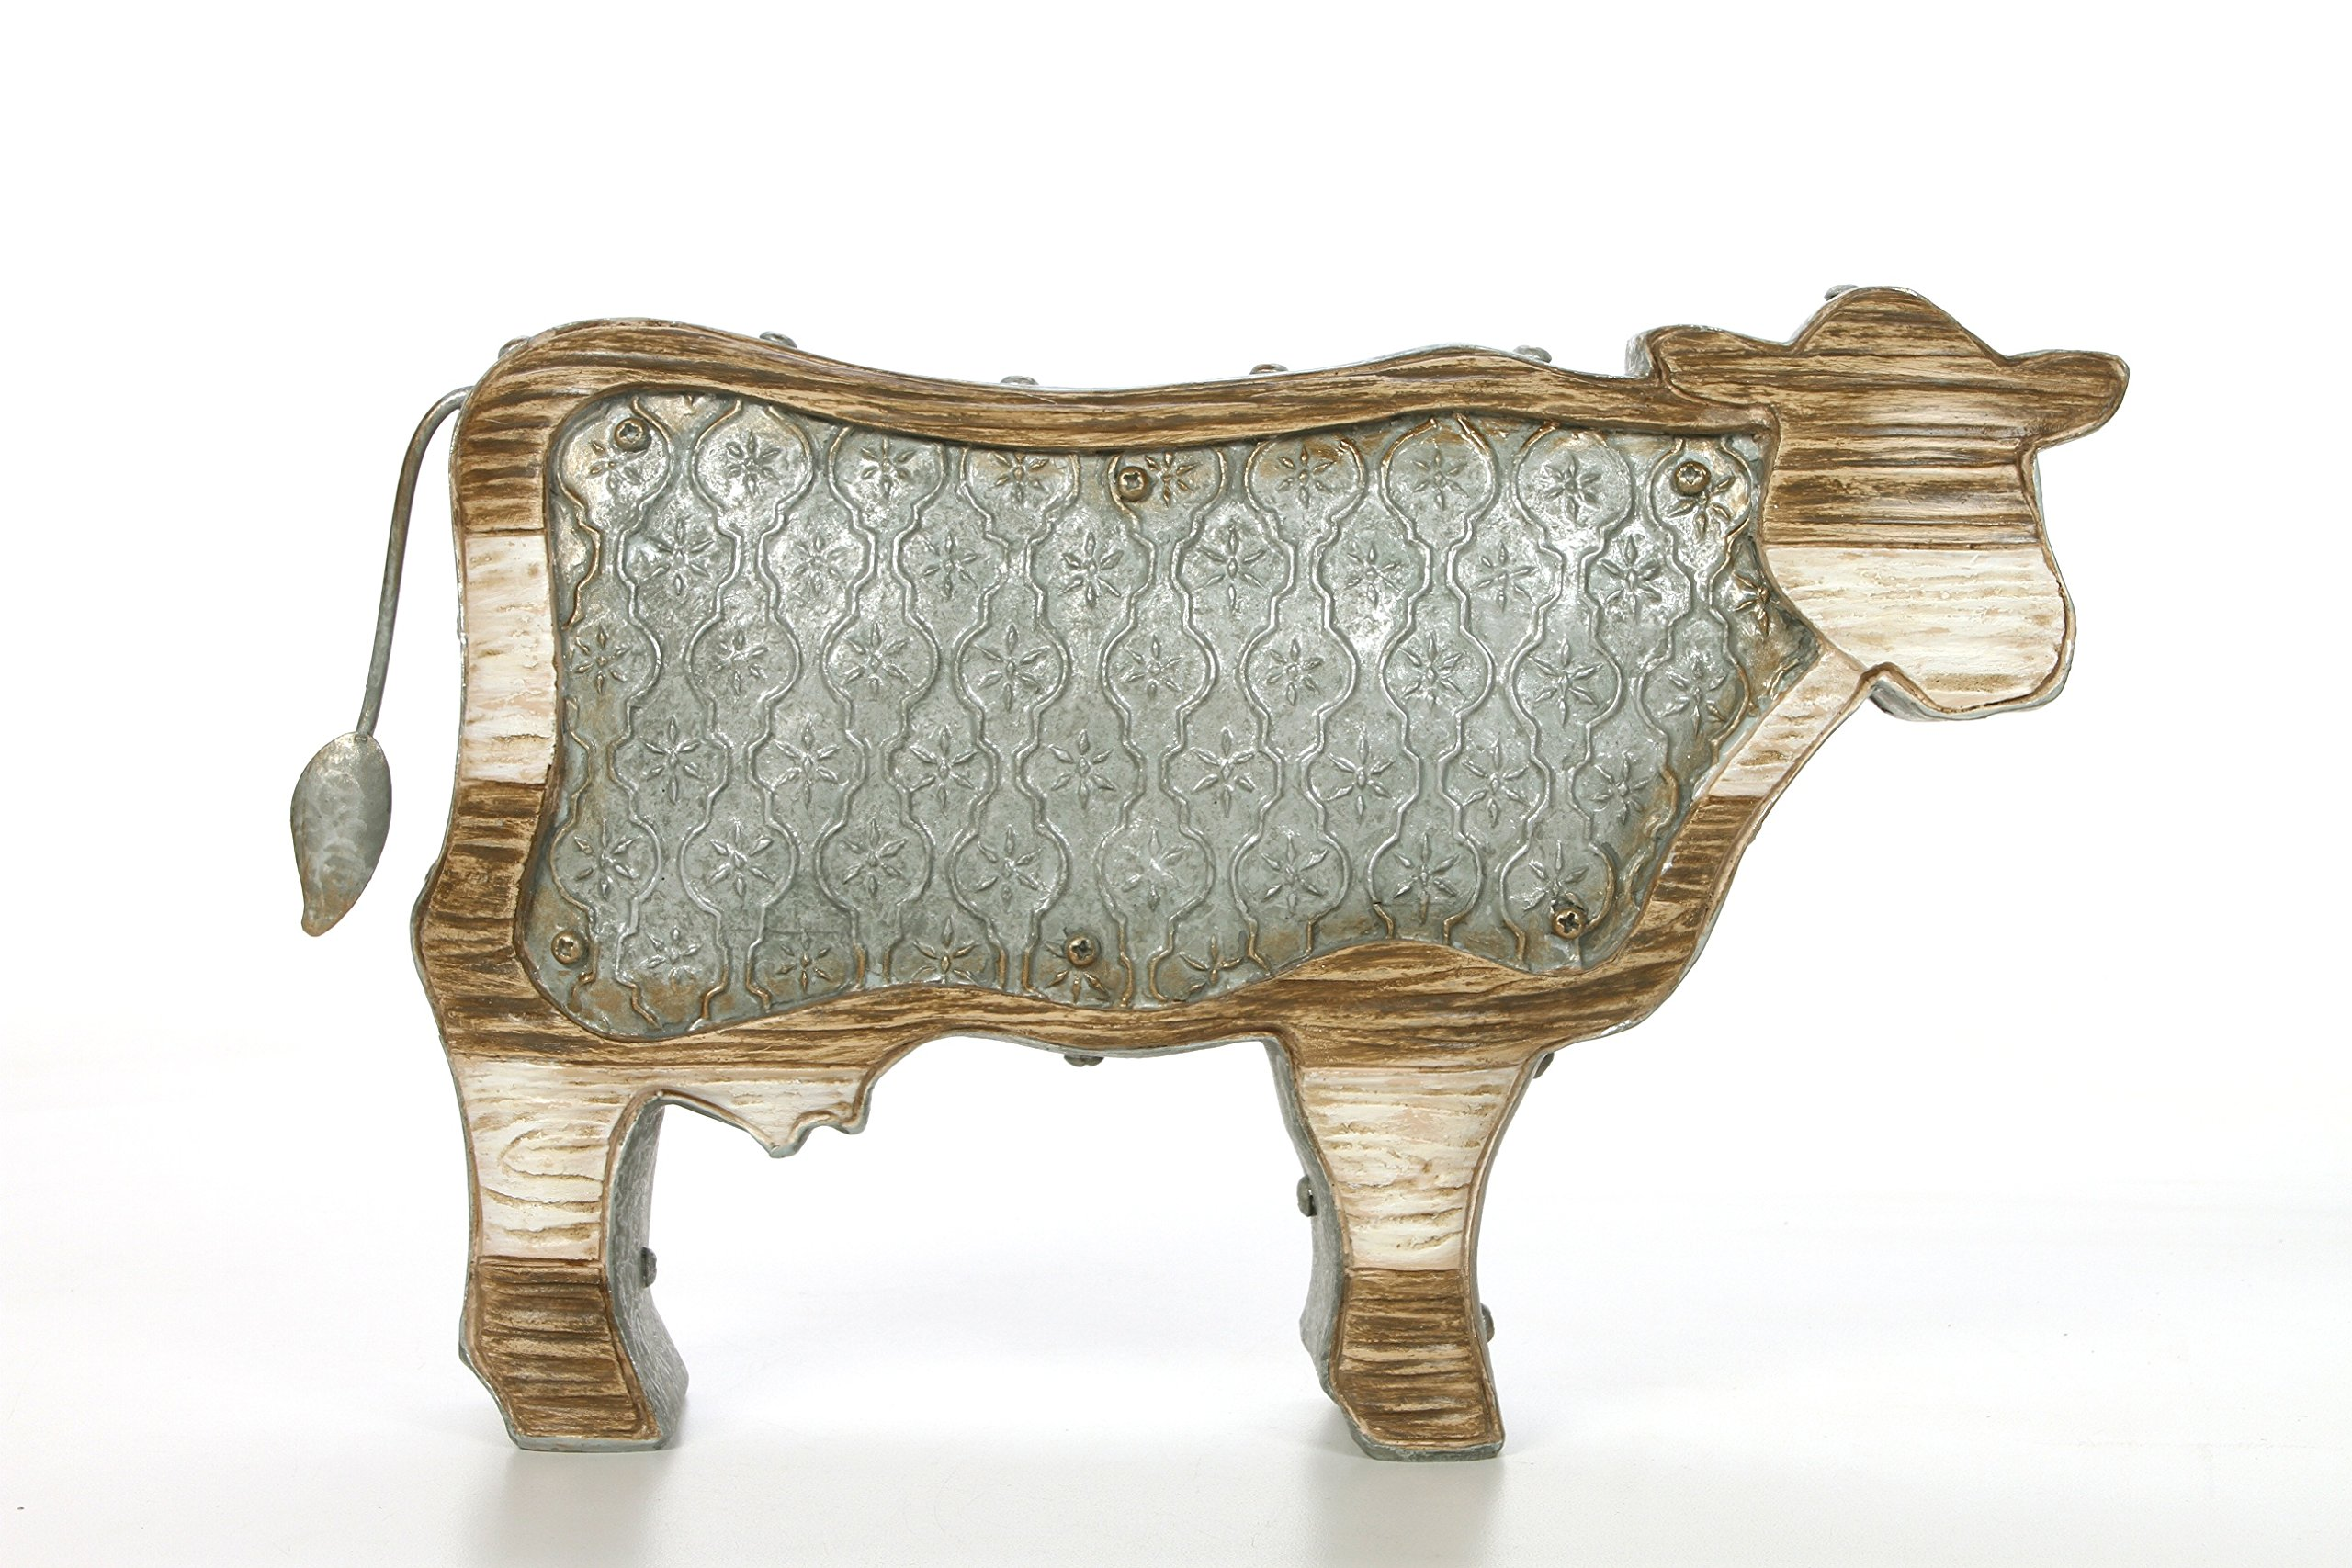 Hosley 13'' Long Table Top Quatrefoil Cow Country Style Decor. Ideal GIFT for Home, Party Favor, Weddings, Spa, Reiki, Meditation, Bathroom Settings O9